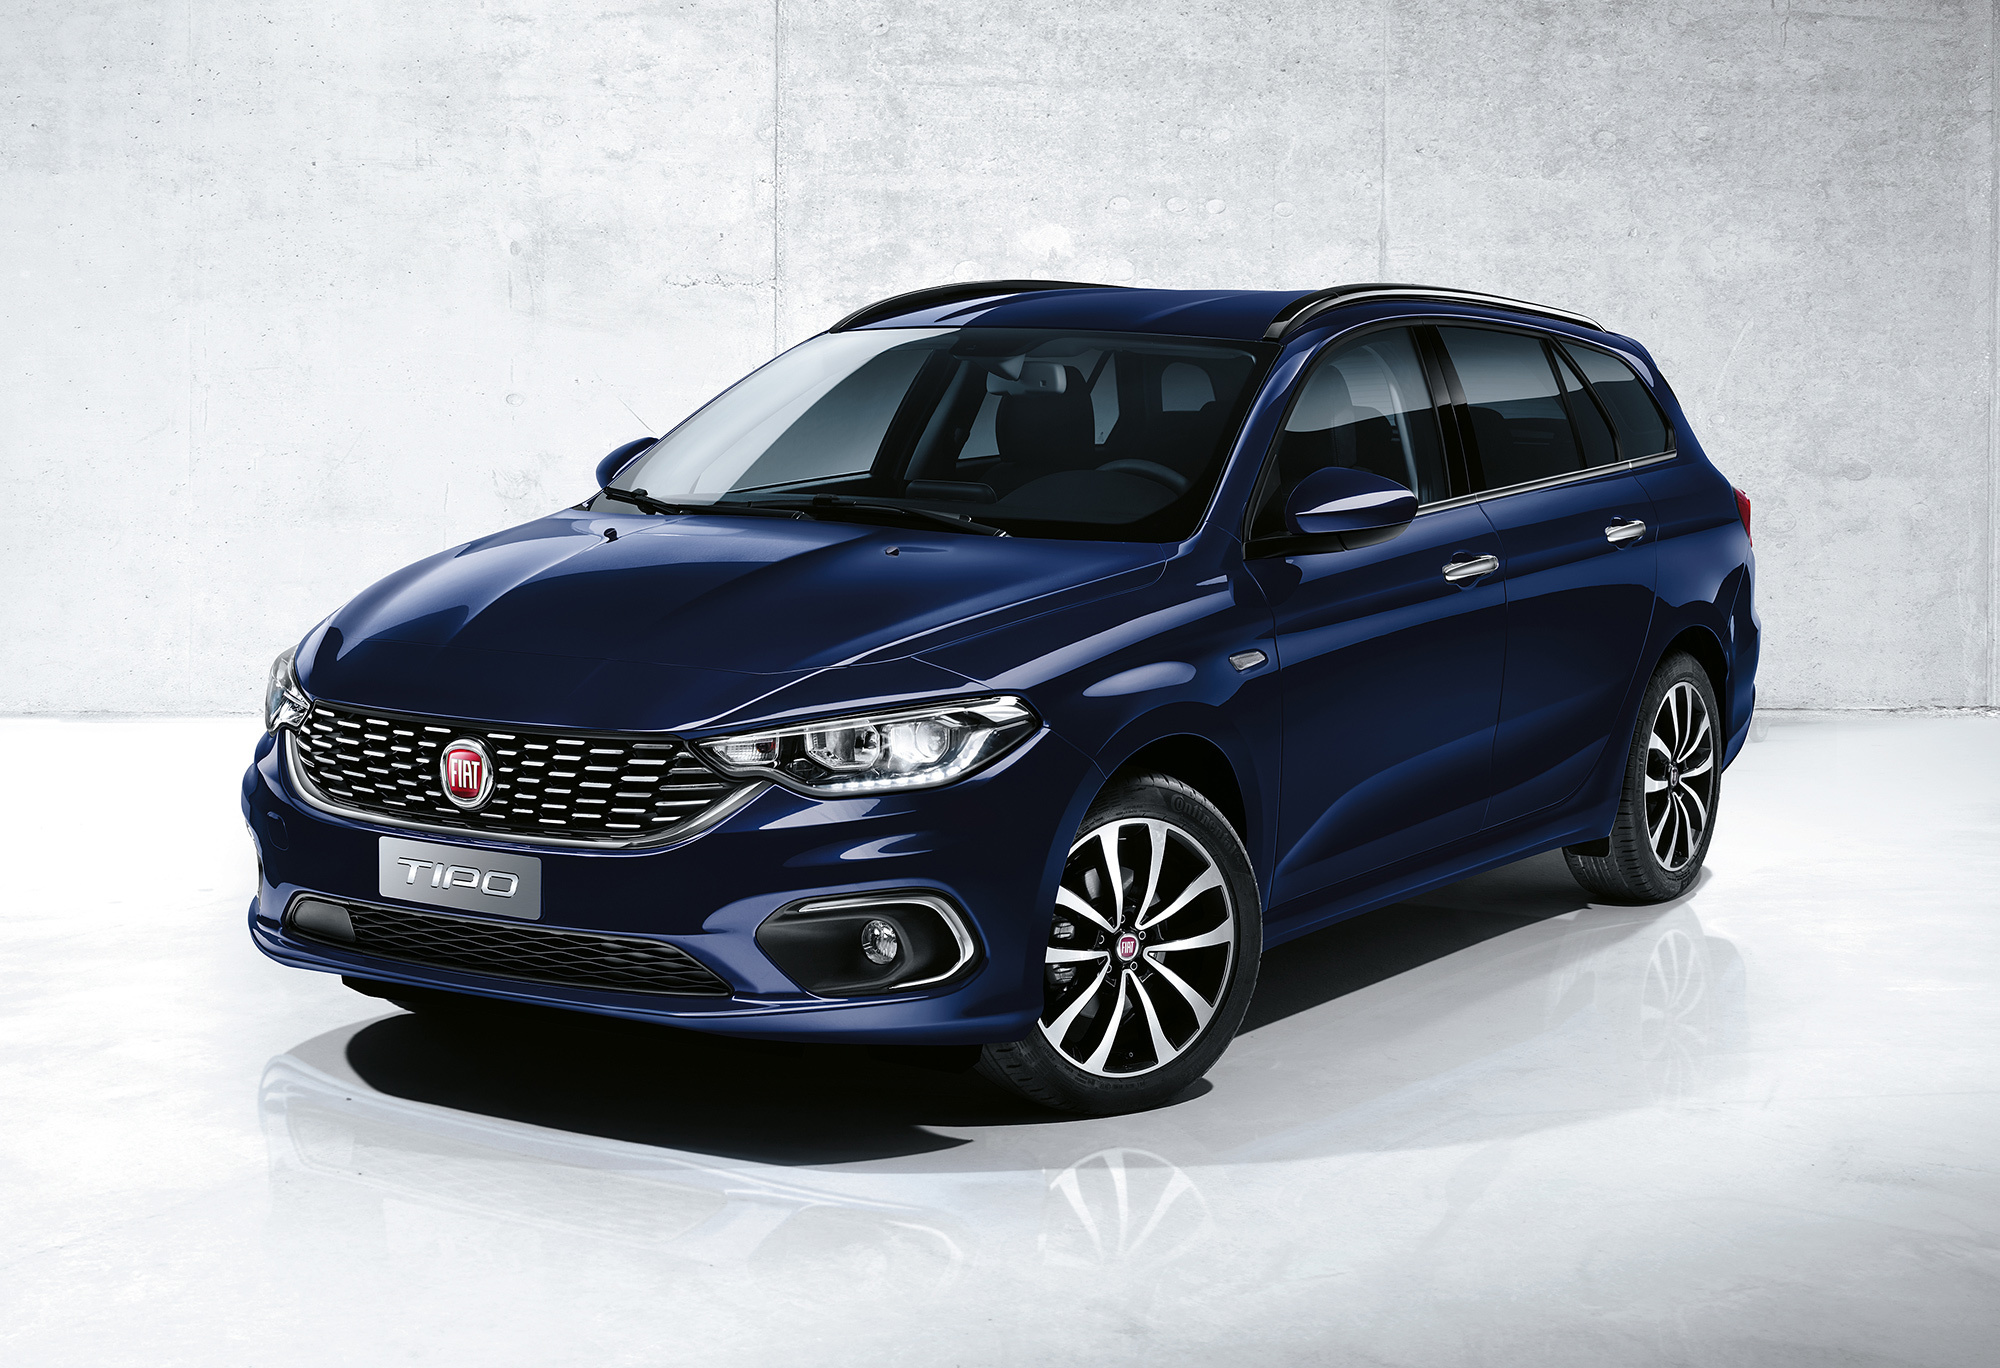 fiat tipo wallpapers images photos pictures backgrounds. Black Bedroom Furniture Sets. Home Design Ideas